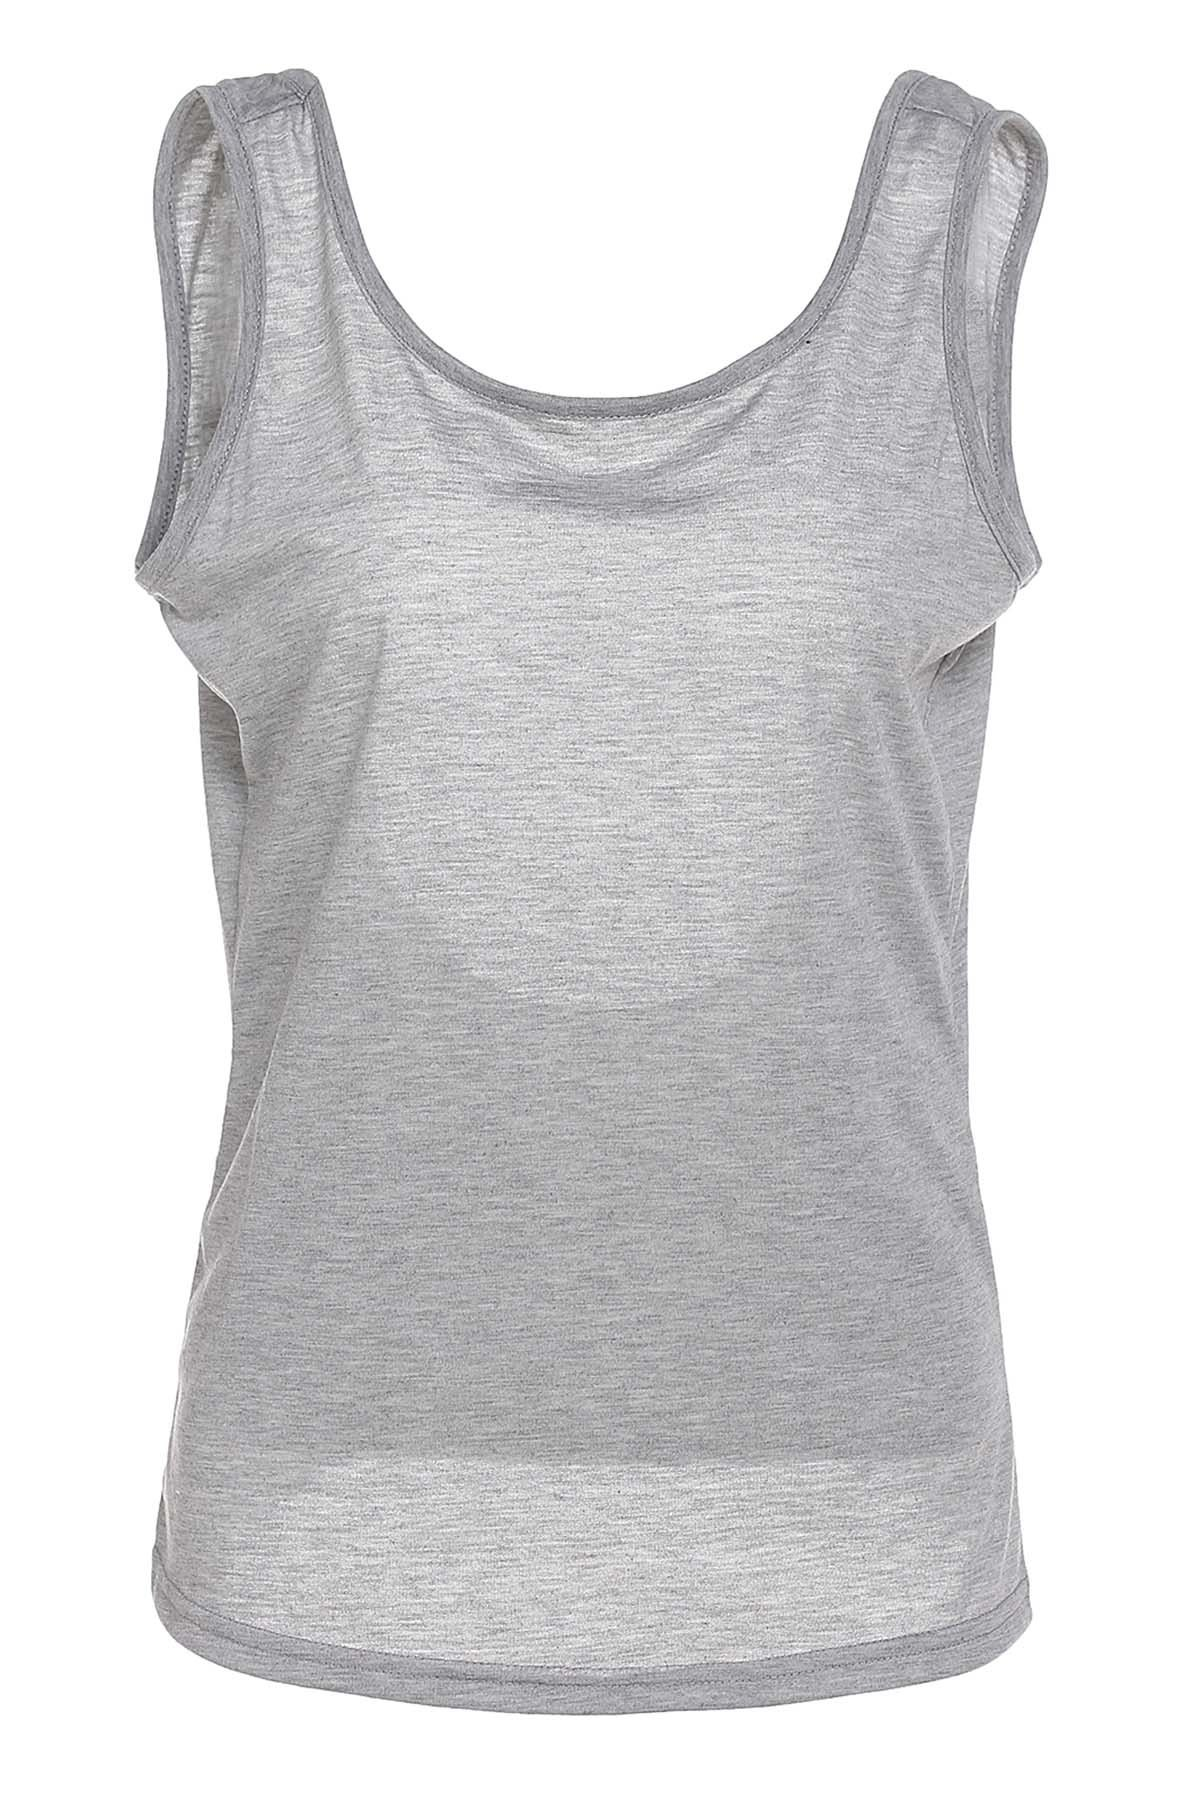 Stylish Women's Scoop Neck Backless Tank Top - GRAY S